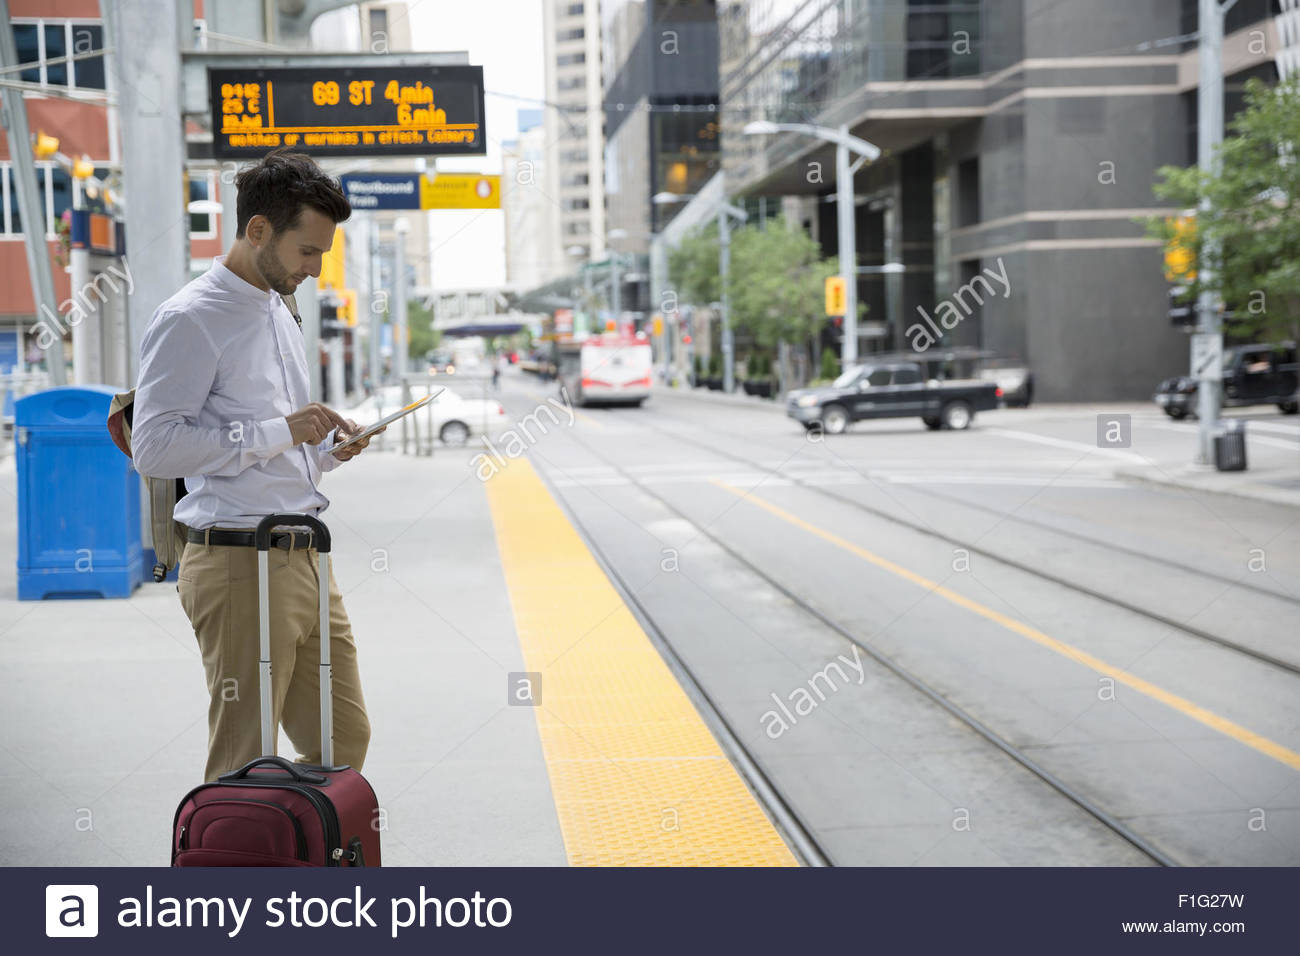 Businessman using digital tablet at train station platform - Stock Image